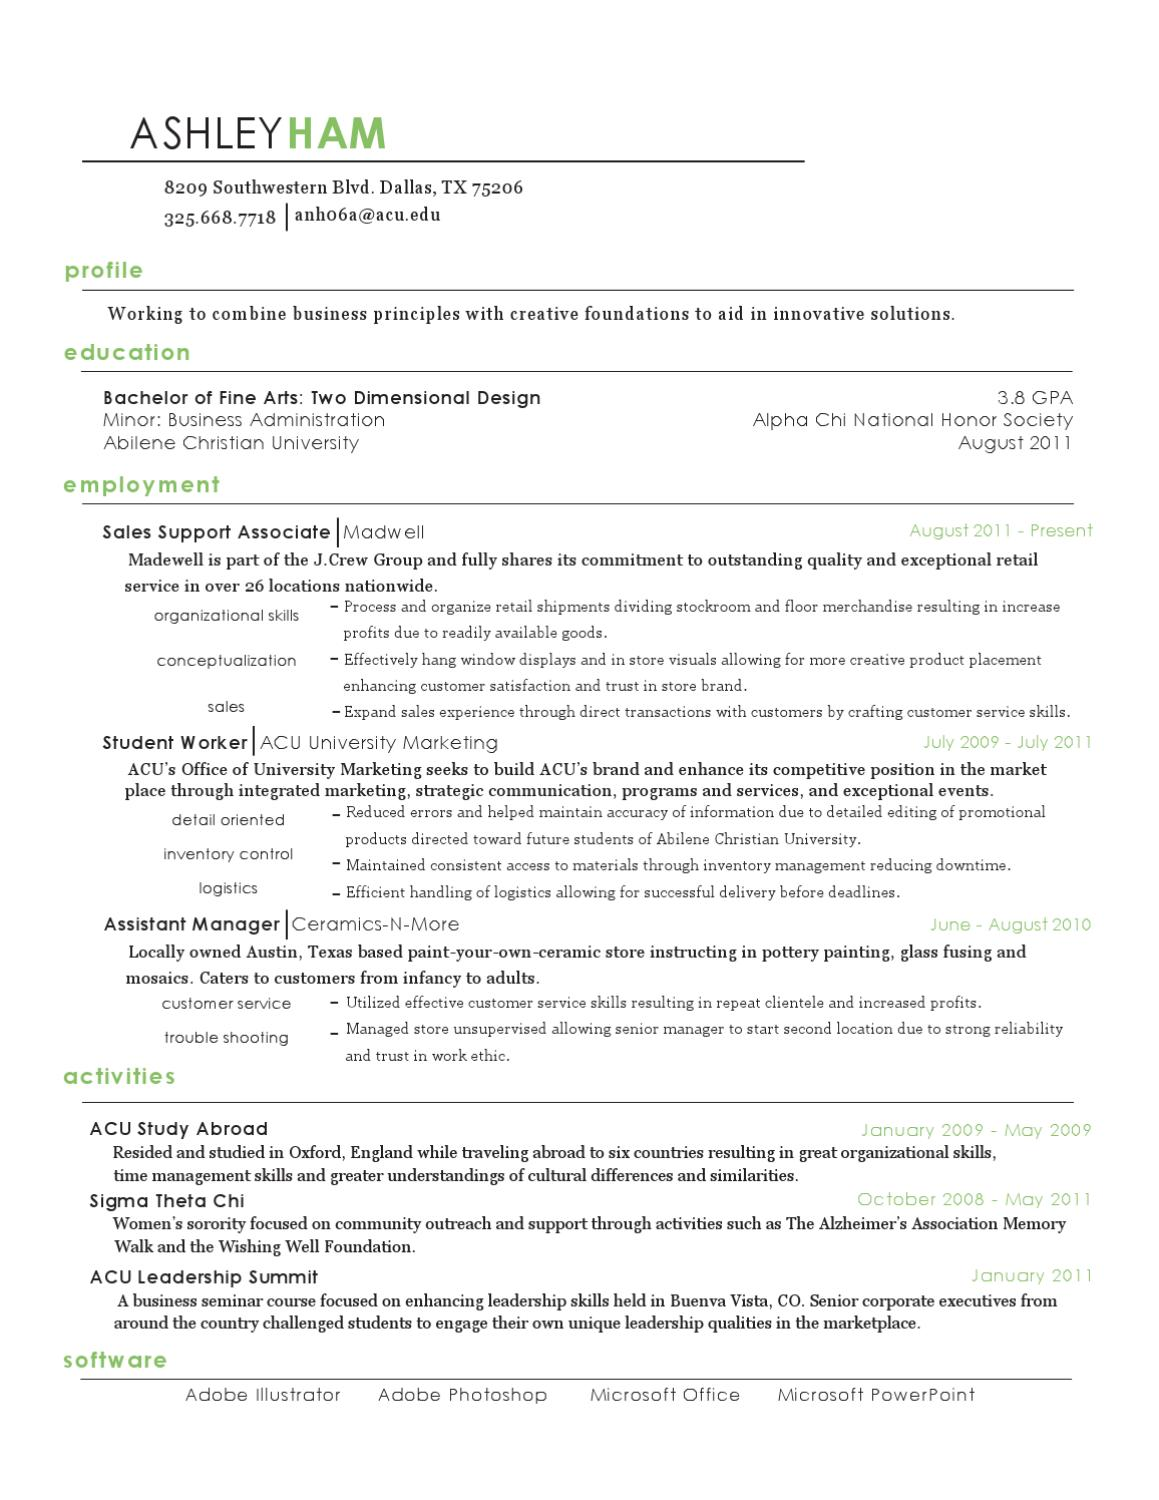 Revised Resume By Ashley Ham Issuu